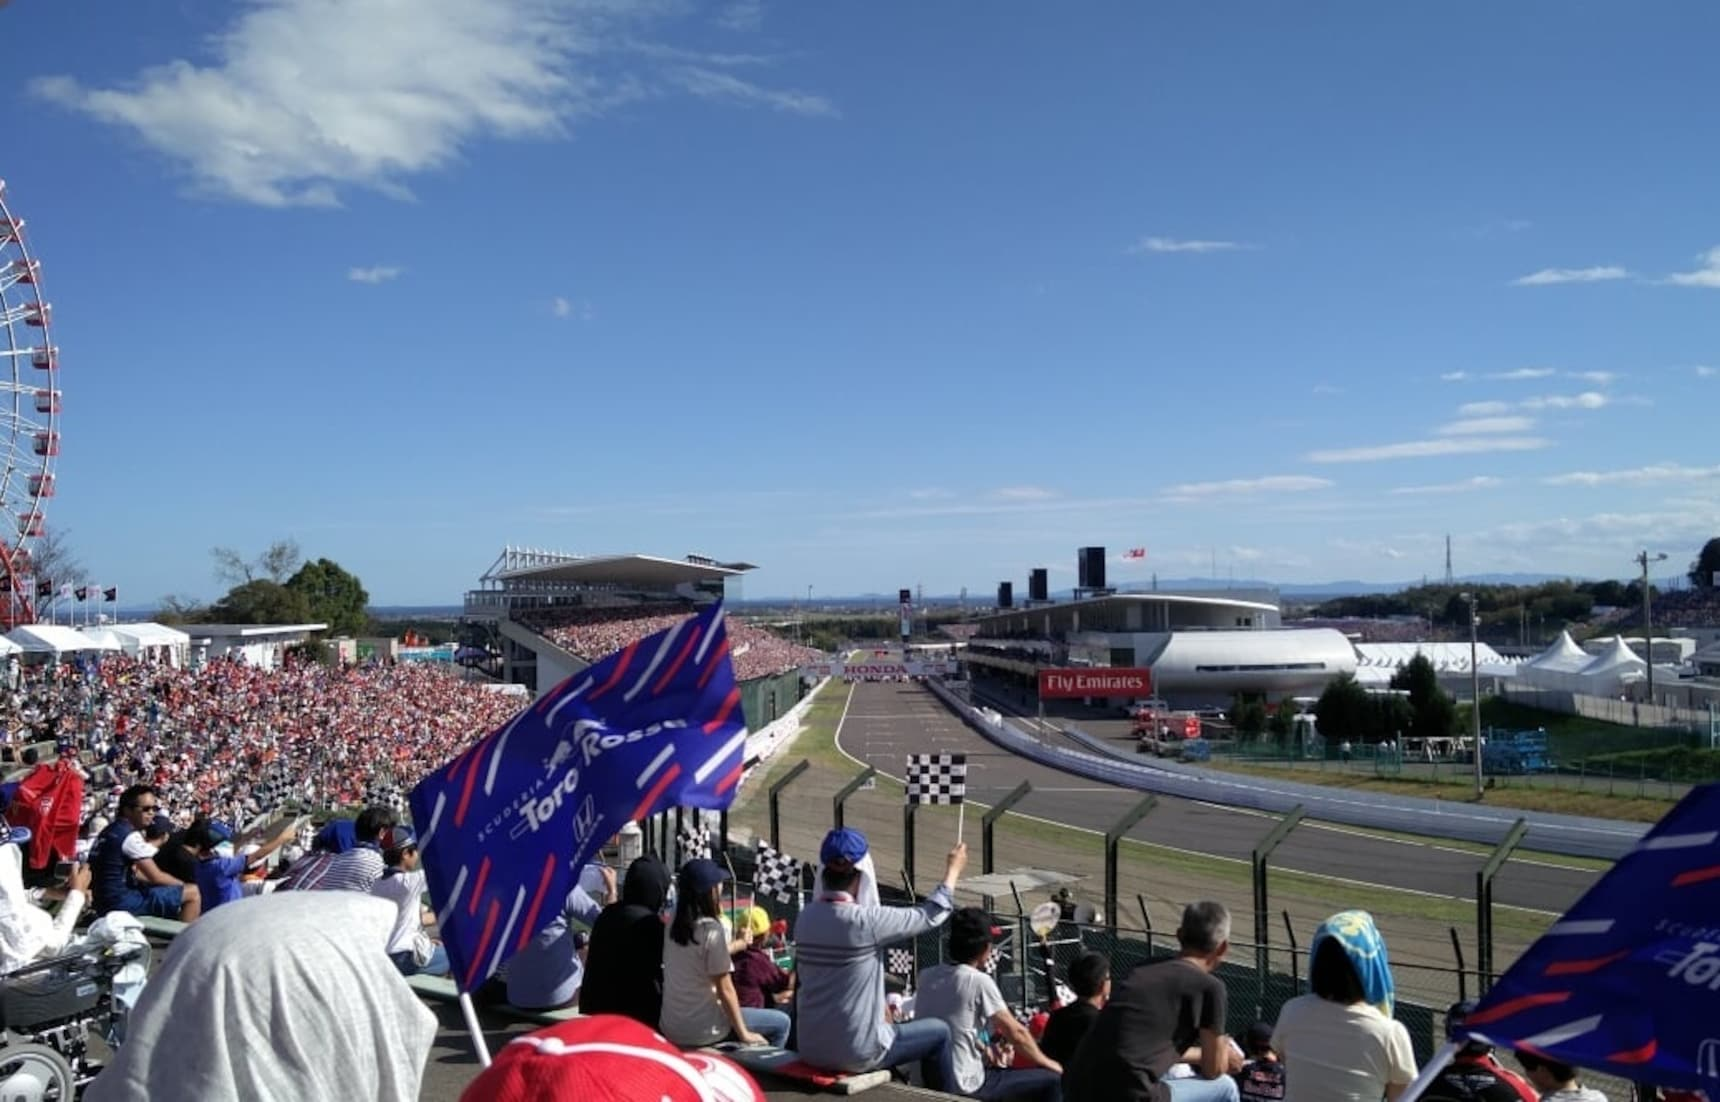 2018 Formula One Grand Prix at Suzuka Circuit